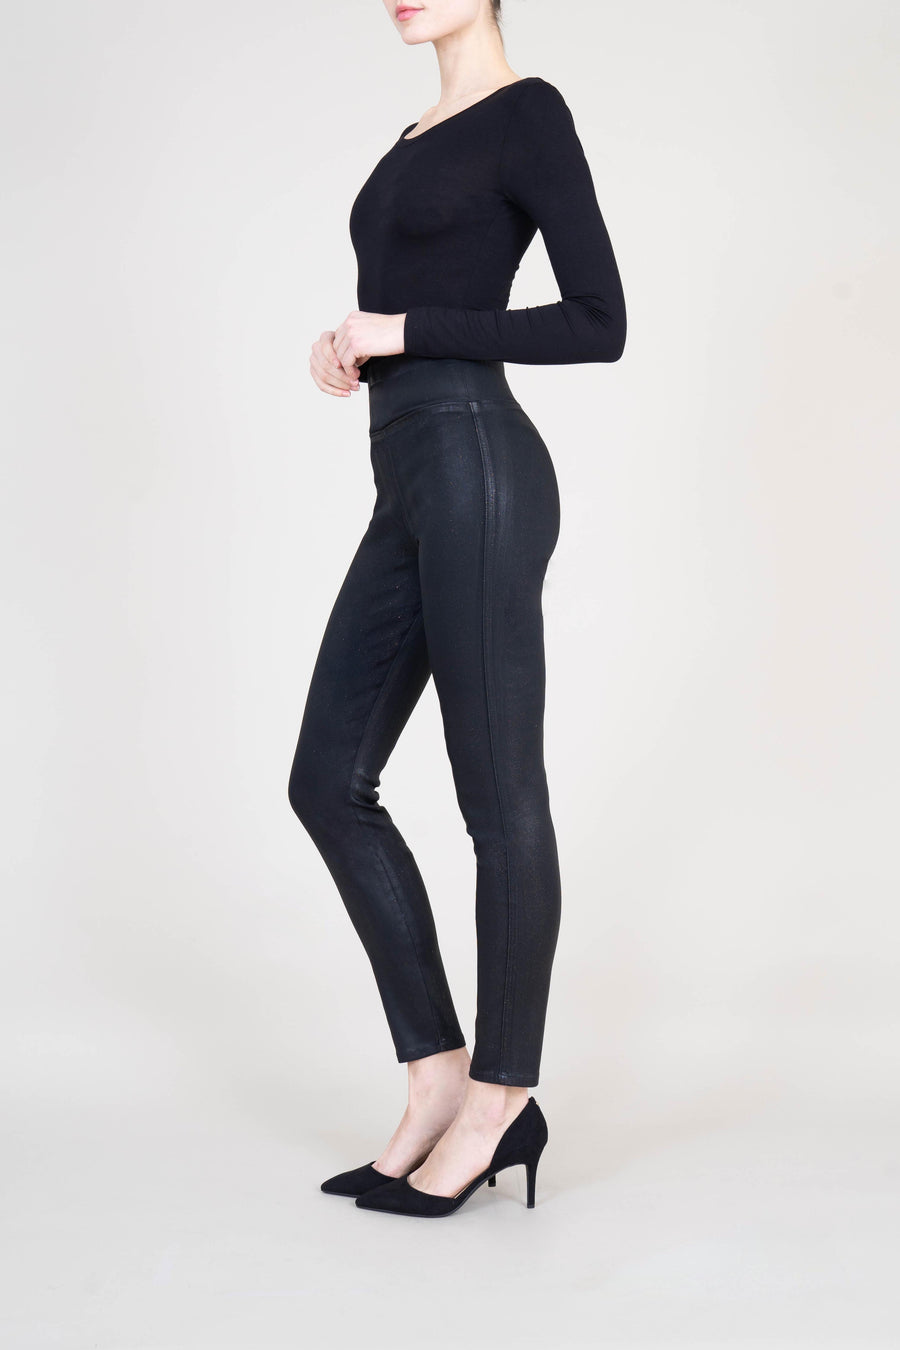 Francis Coated Pull On Legging - level99jeans